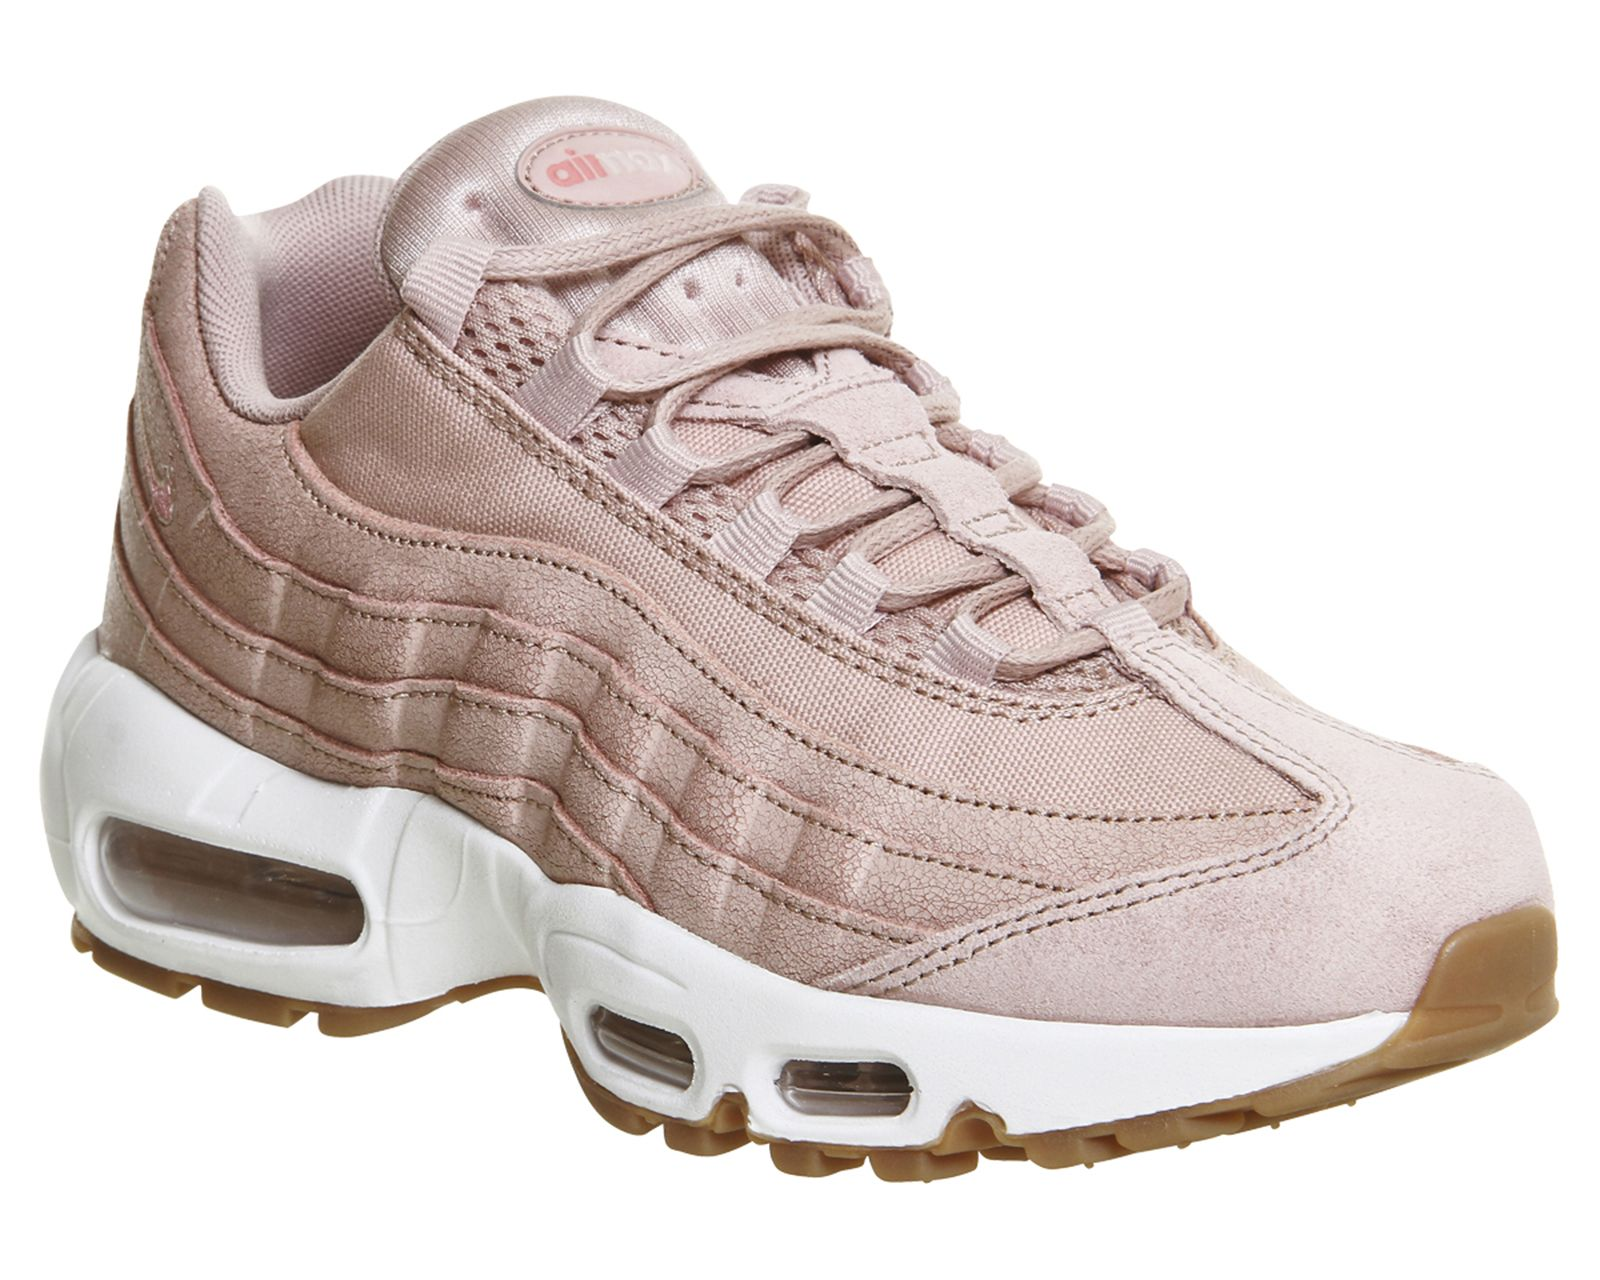 nike air max 95 pink oxford prm